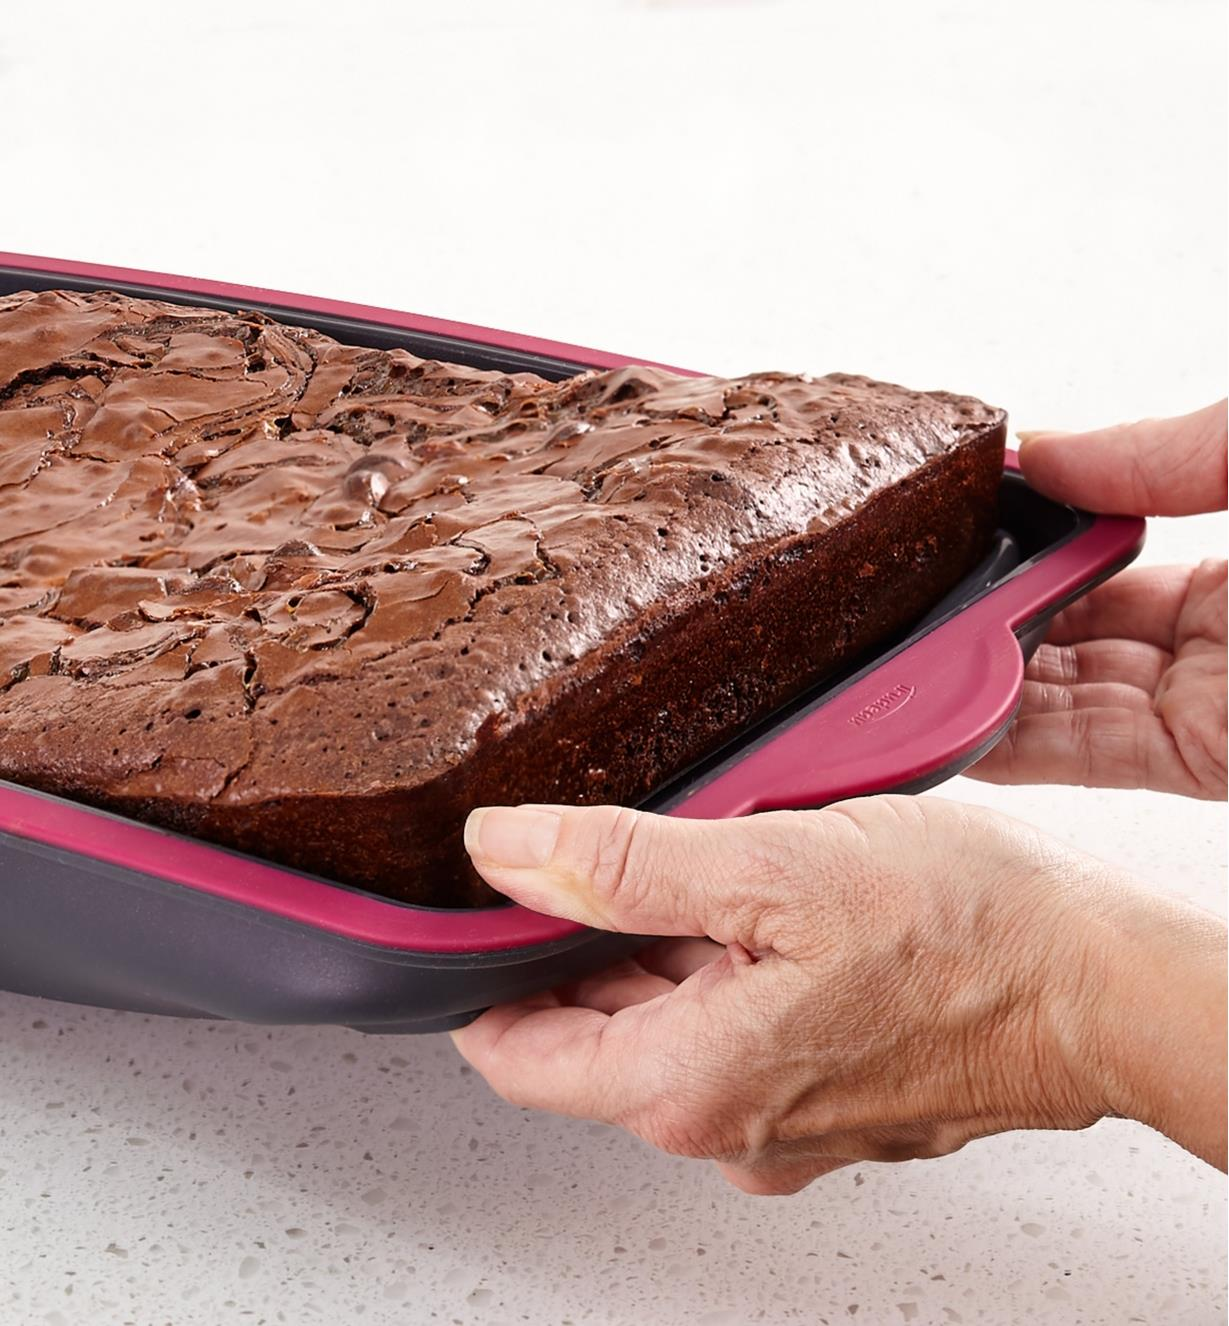 Removing baked brownies by pushing the flexible bottom of the pan upward